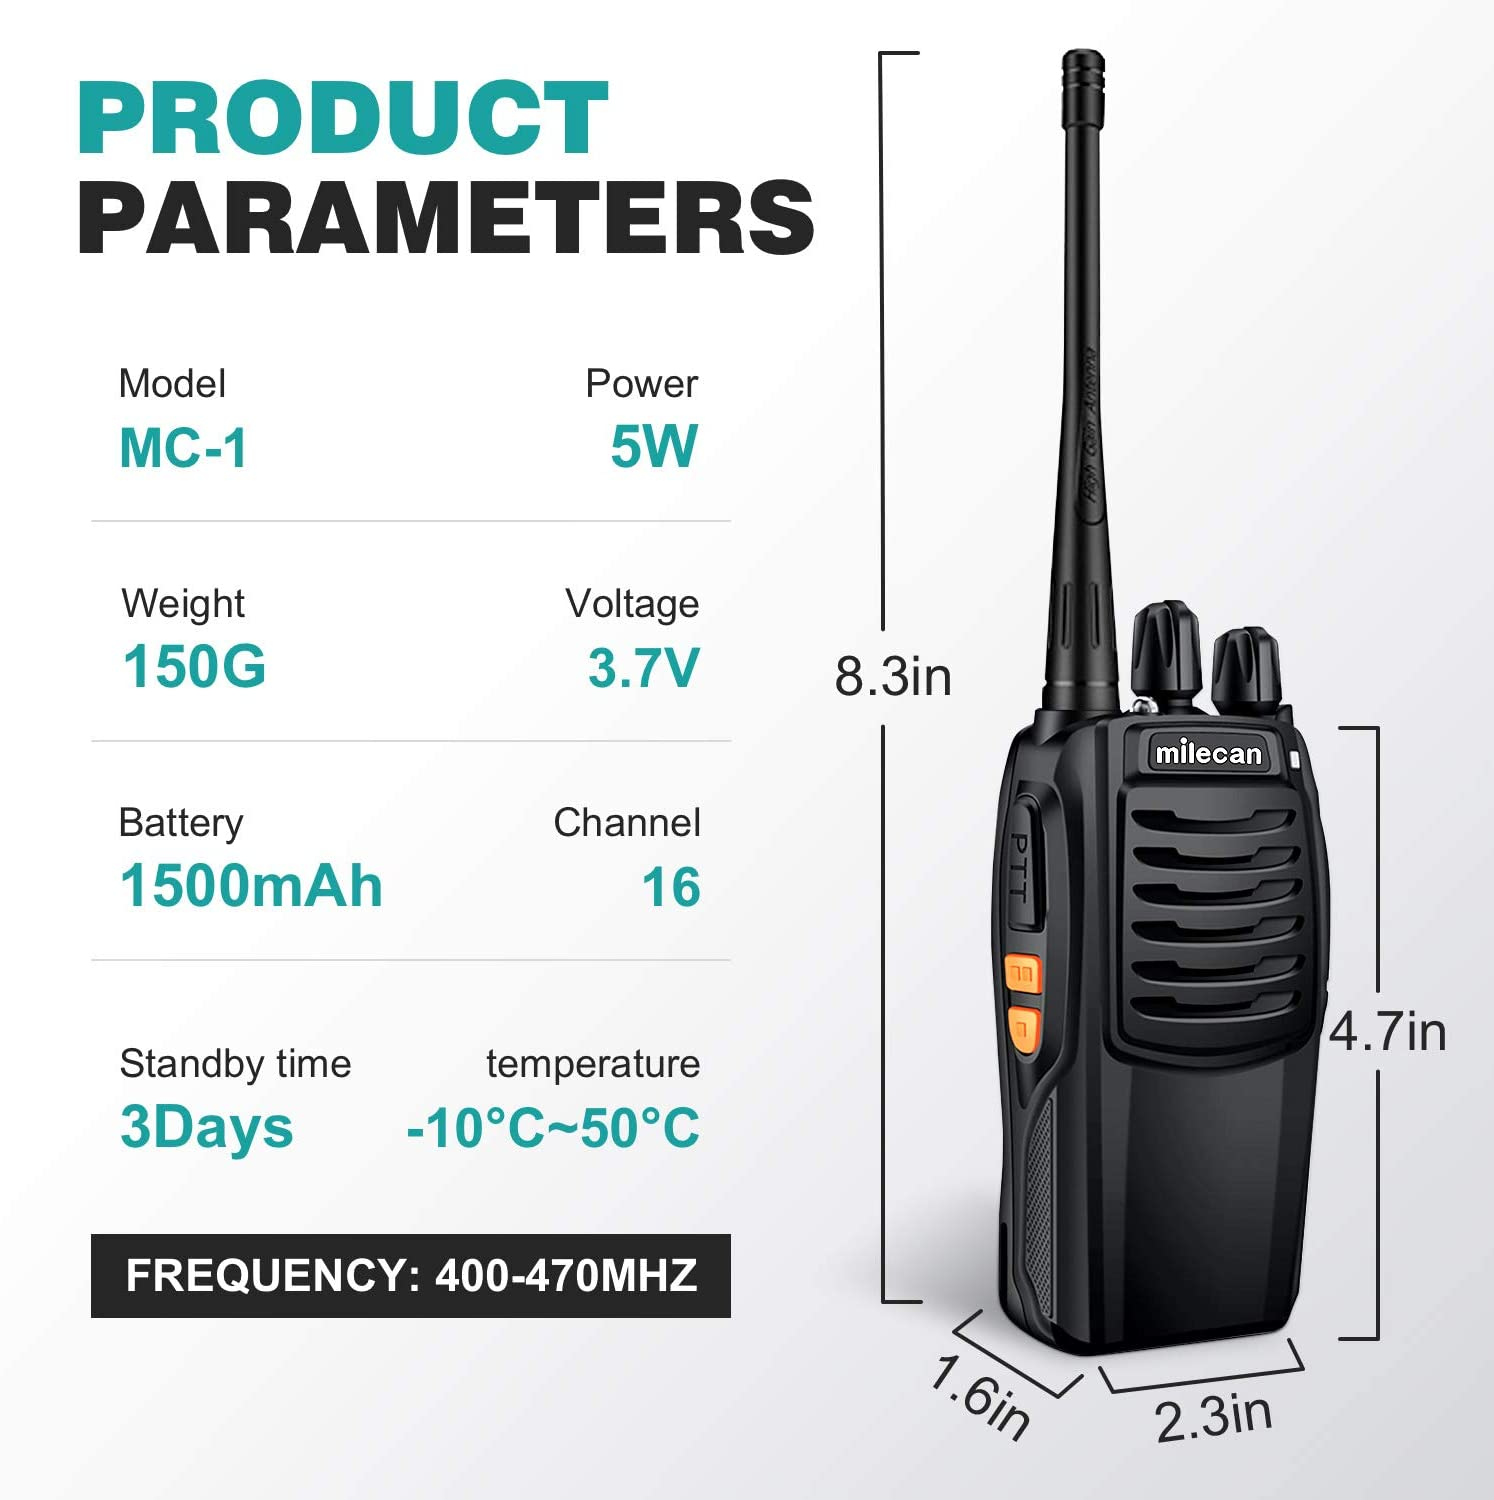 Costume walkie Talkie Rechargeable Battery Headphone Wall Charger Long Range 16 Channels Two Way Radio Milecan MC-1 Walkie Talkies 2pcs in One Box with mic earpiece 2pcs radios